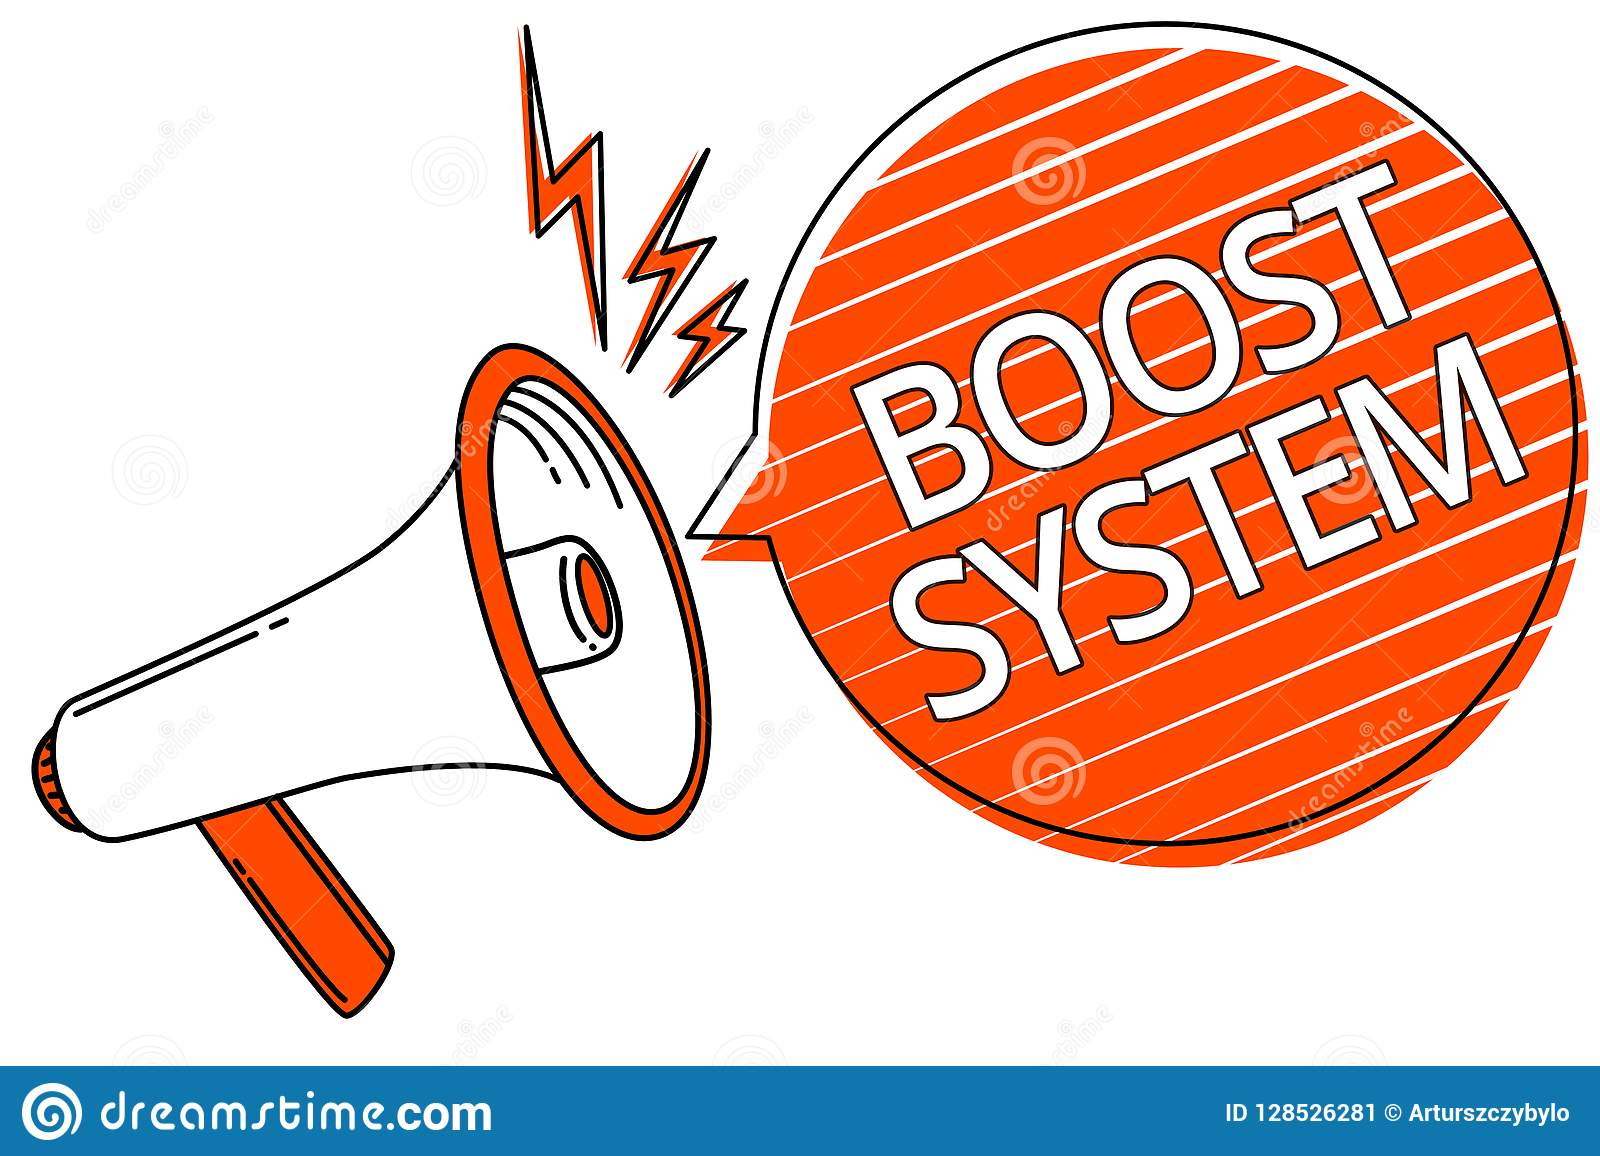 what is meaning of boost